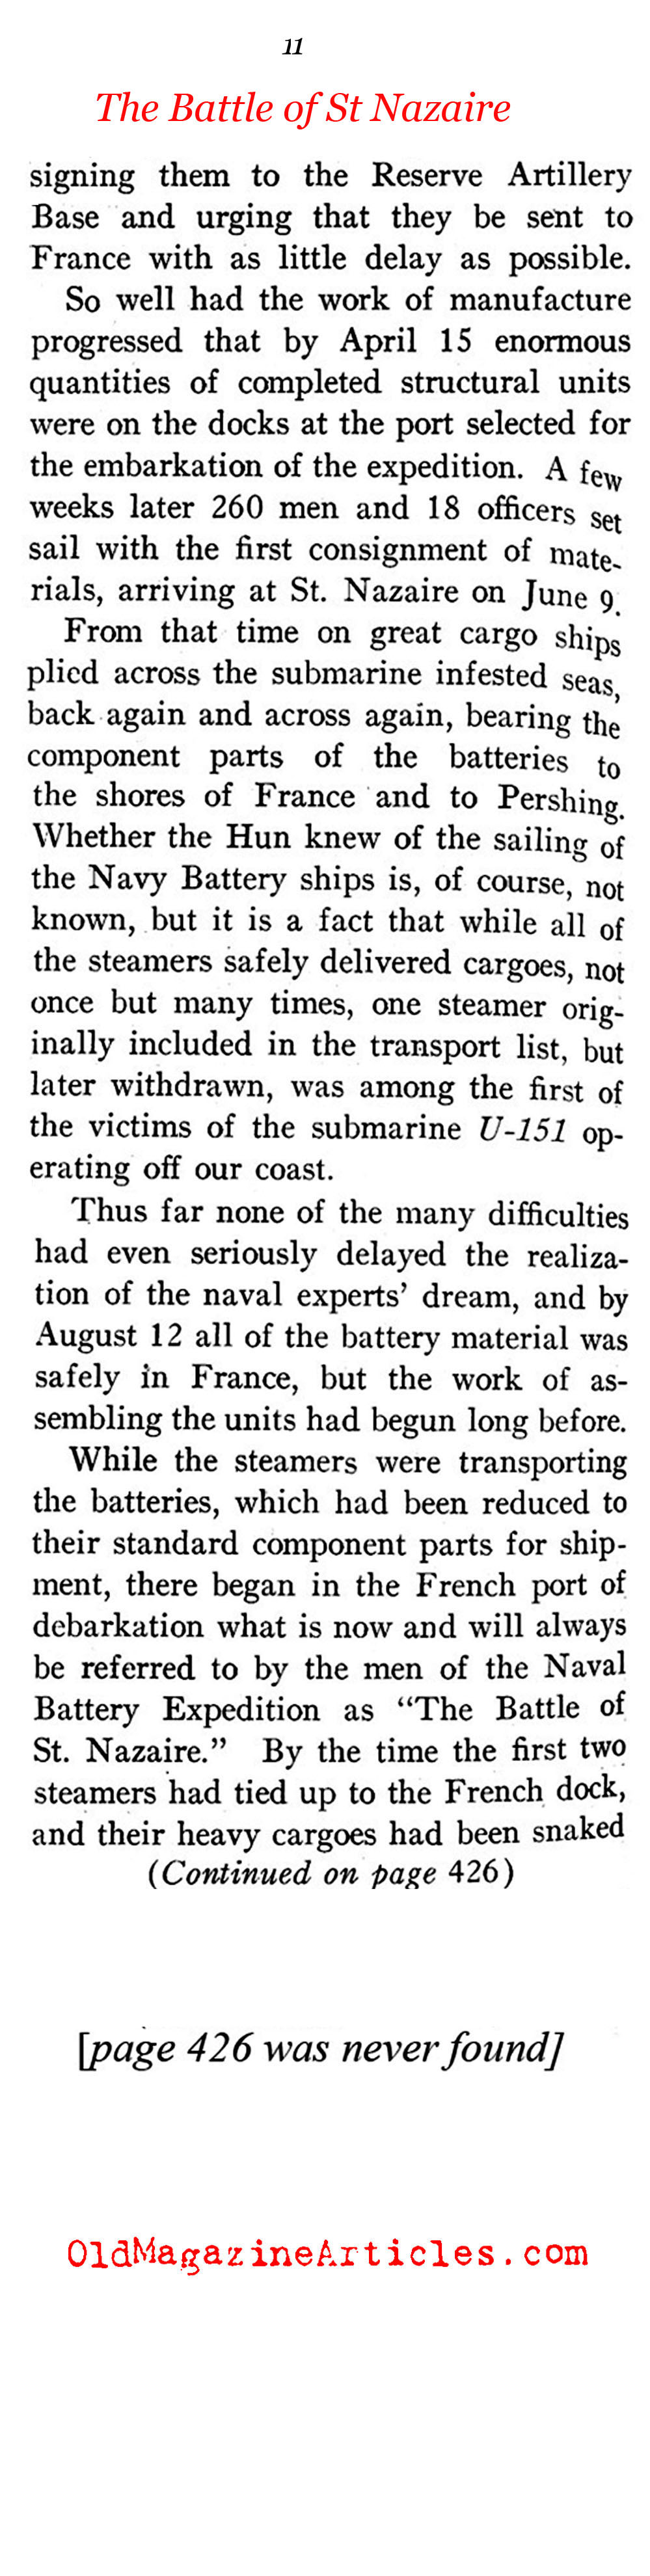 Firing from the Rails (Sea Power Magazine, 1918)